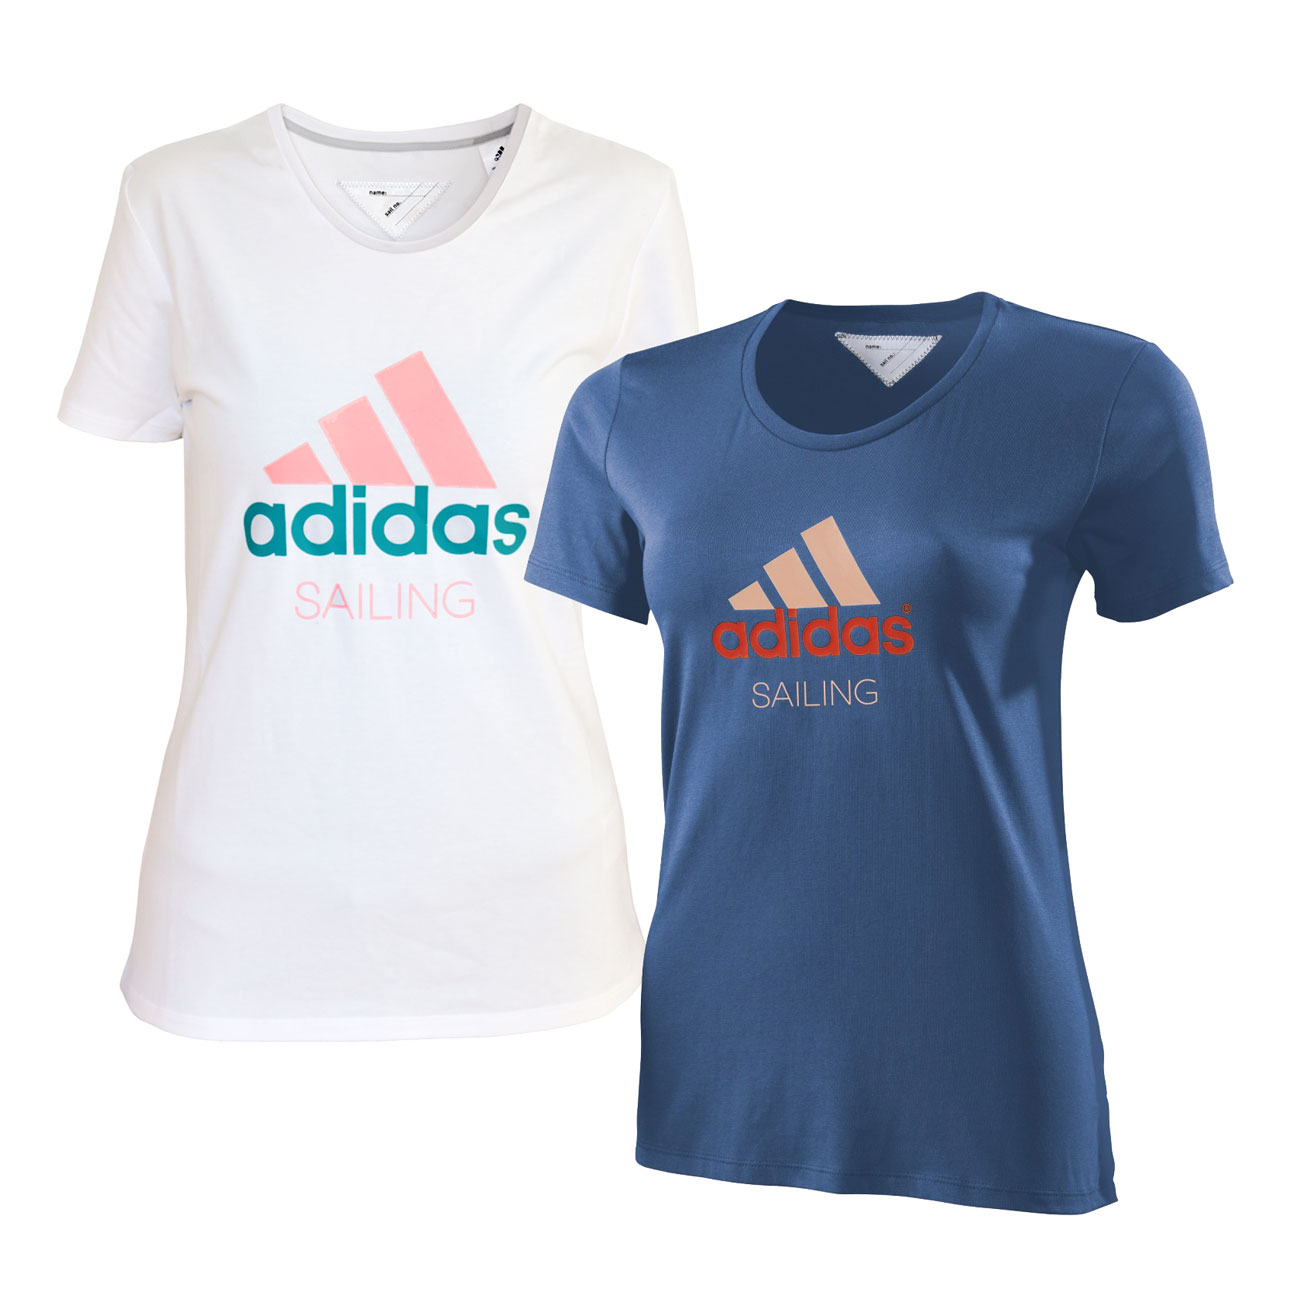 adidas sailing performance logo shirt women 39 s t shirt outdoor sports ladies ebay. Black Bedroom Furniture Sets. Home Design Ideas